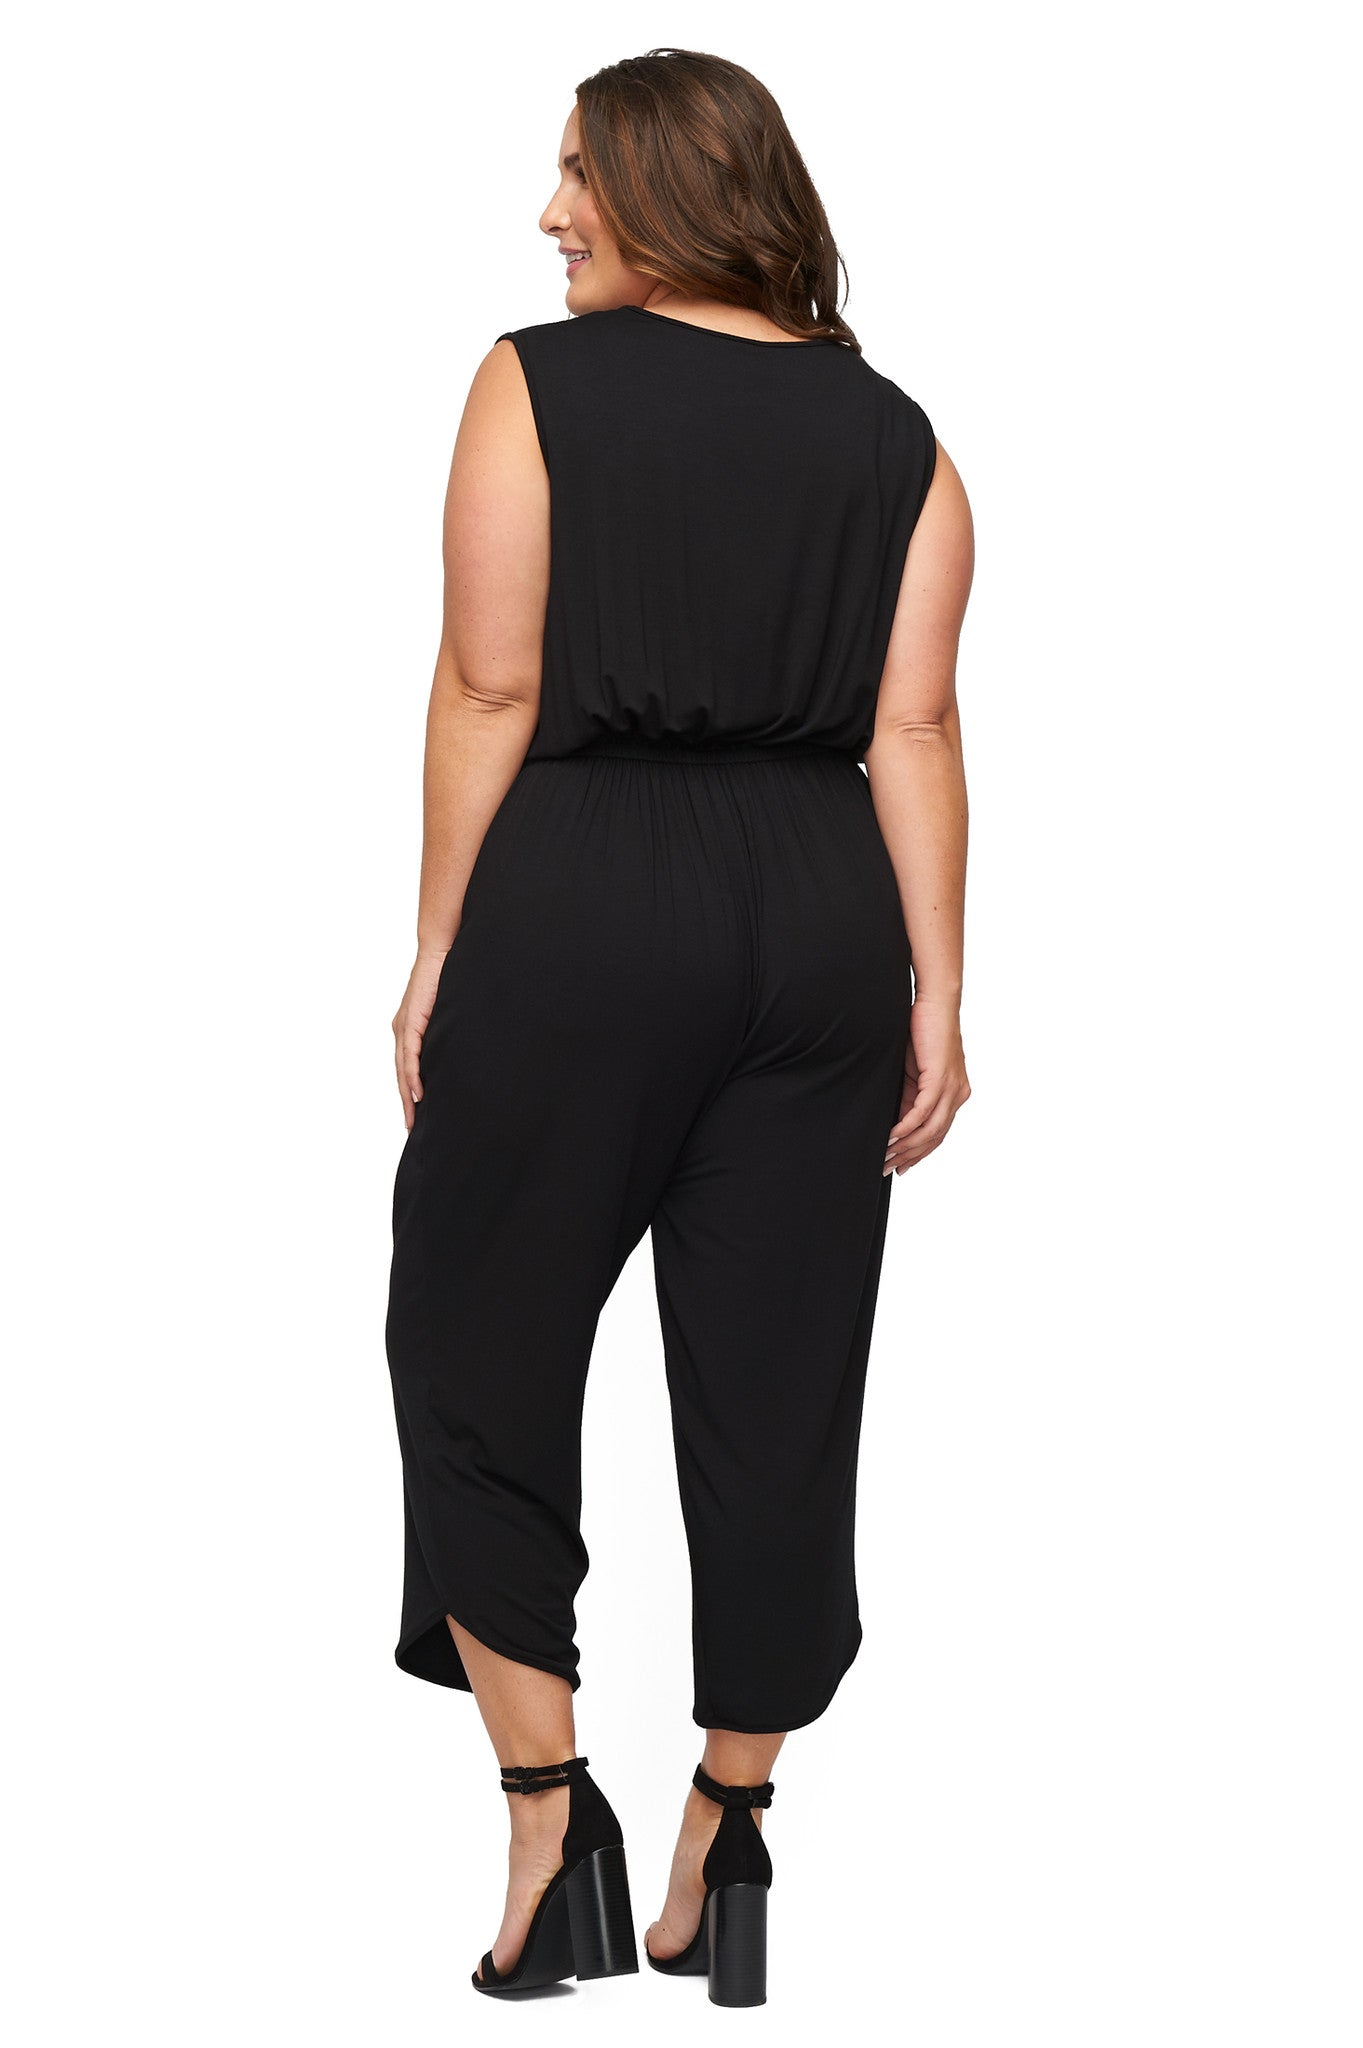 Lura Jumpsuit WL - Black